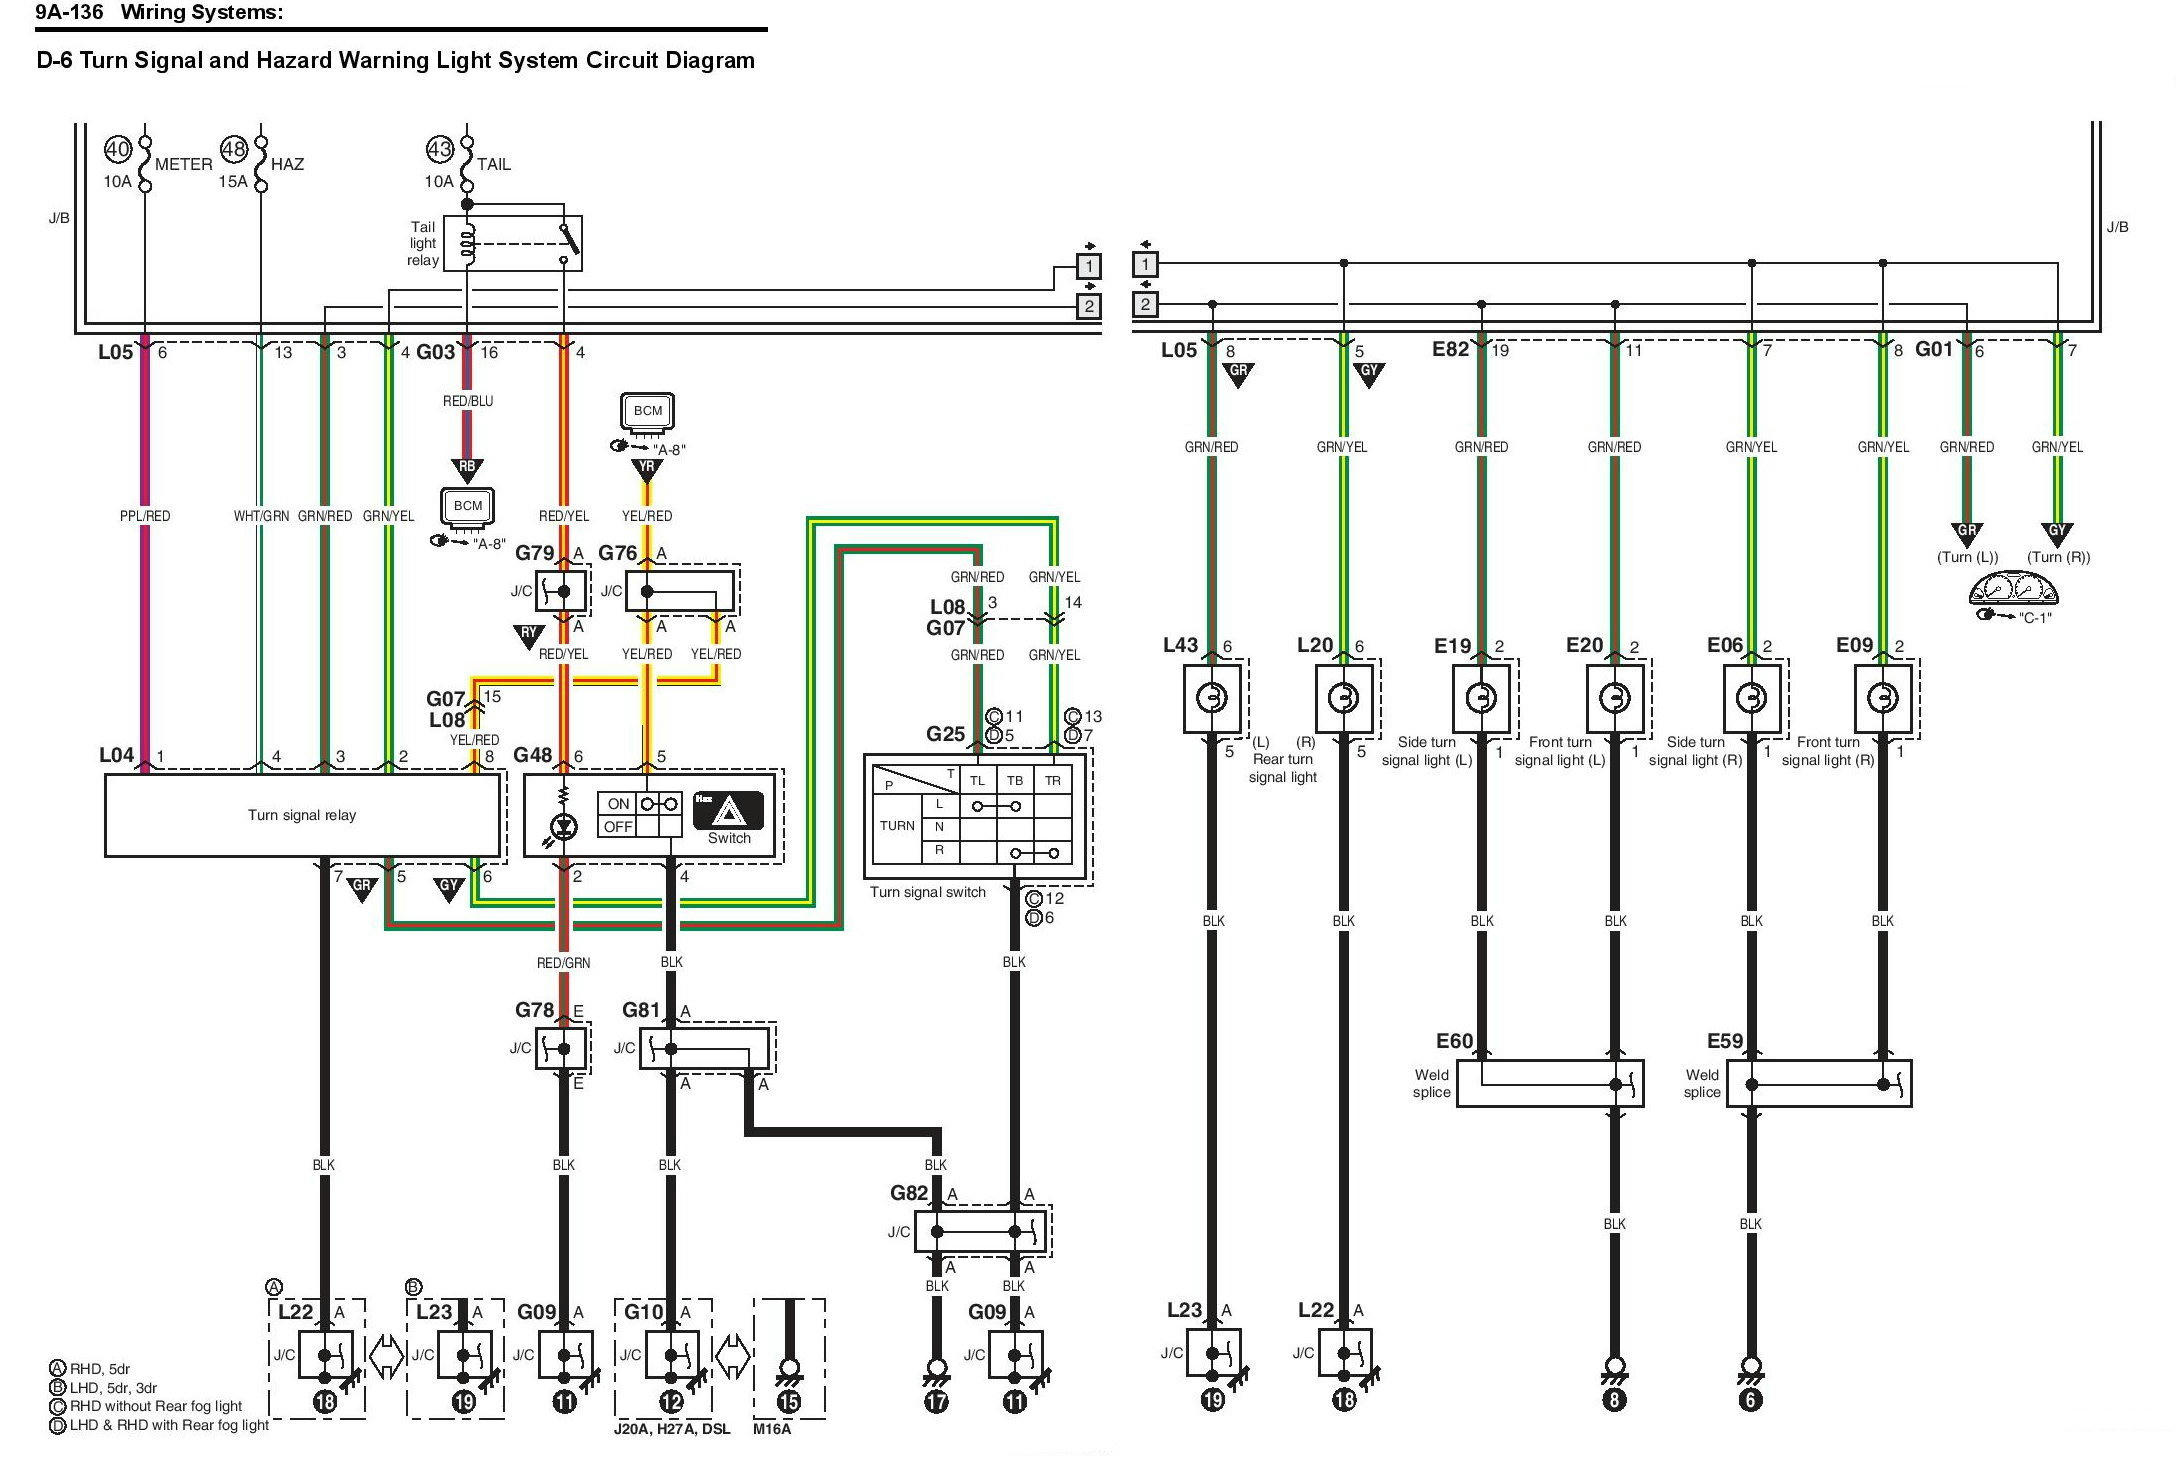 Indicator Flasher Relay Wiring Diagram 38 Images Top Circuits Page 793 Nextgr Ha4kp0t27r79tiqzg Pin Out For Suzuki Forums